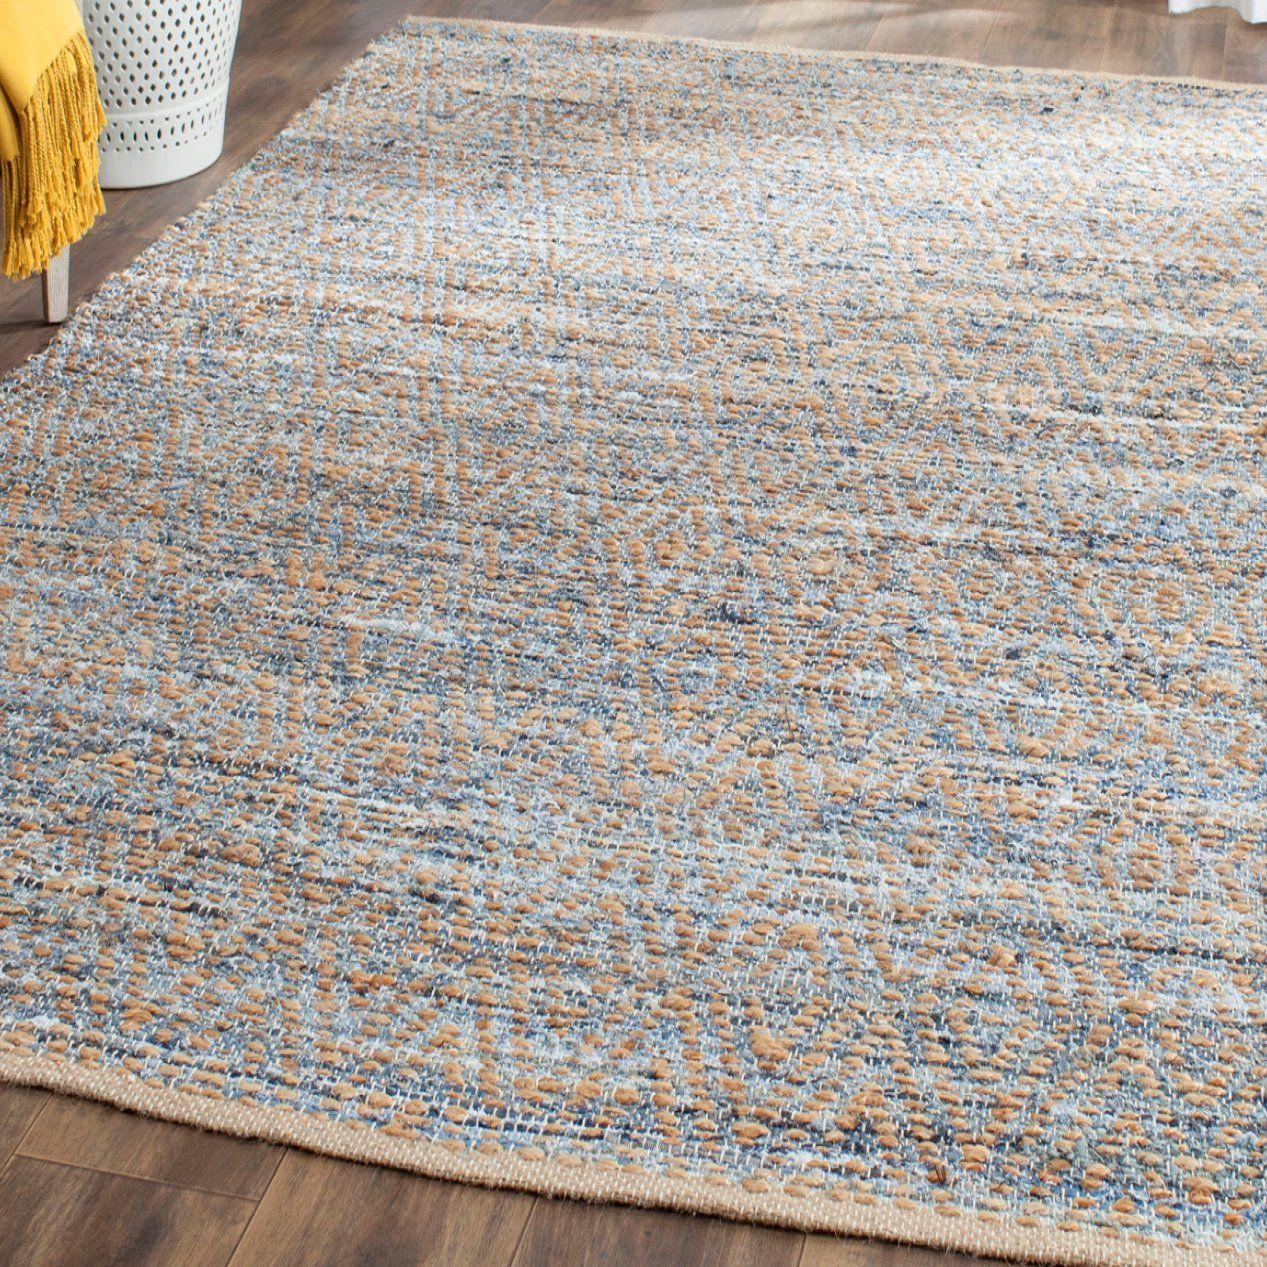 Gilchrist Striped Handmade Flatweave Natural Blue Rug Rugs Area Rugs Lanai Decorating